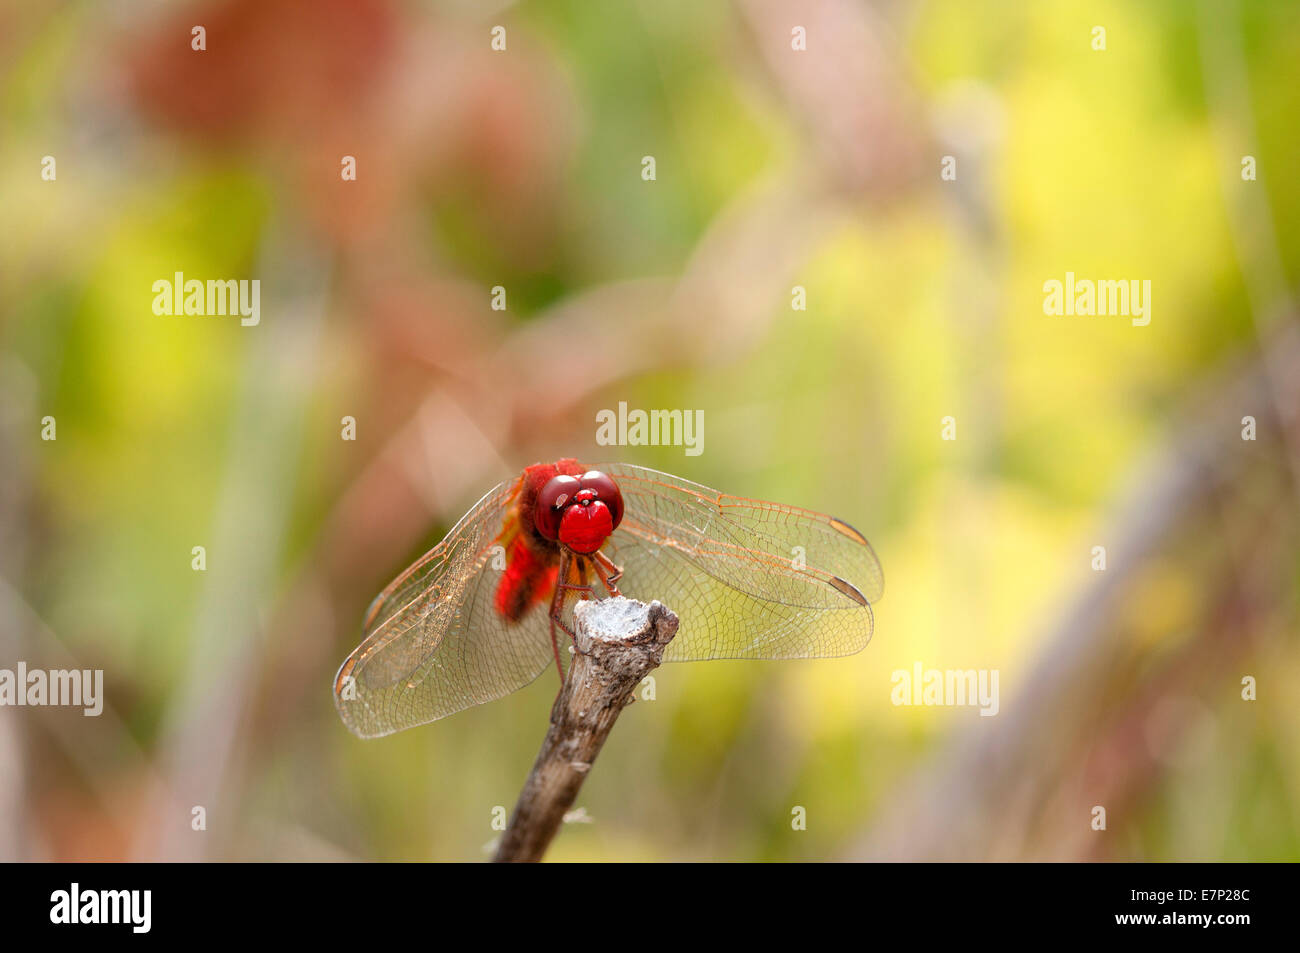 Scarlet Dragonfly, Broad Scarlet, France, Crocothemis erythraea, scarlet darter, insect, dragonfly, red, crocothemis Stock Photo